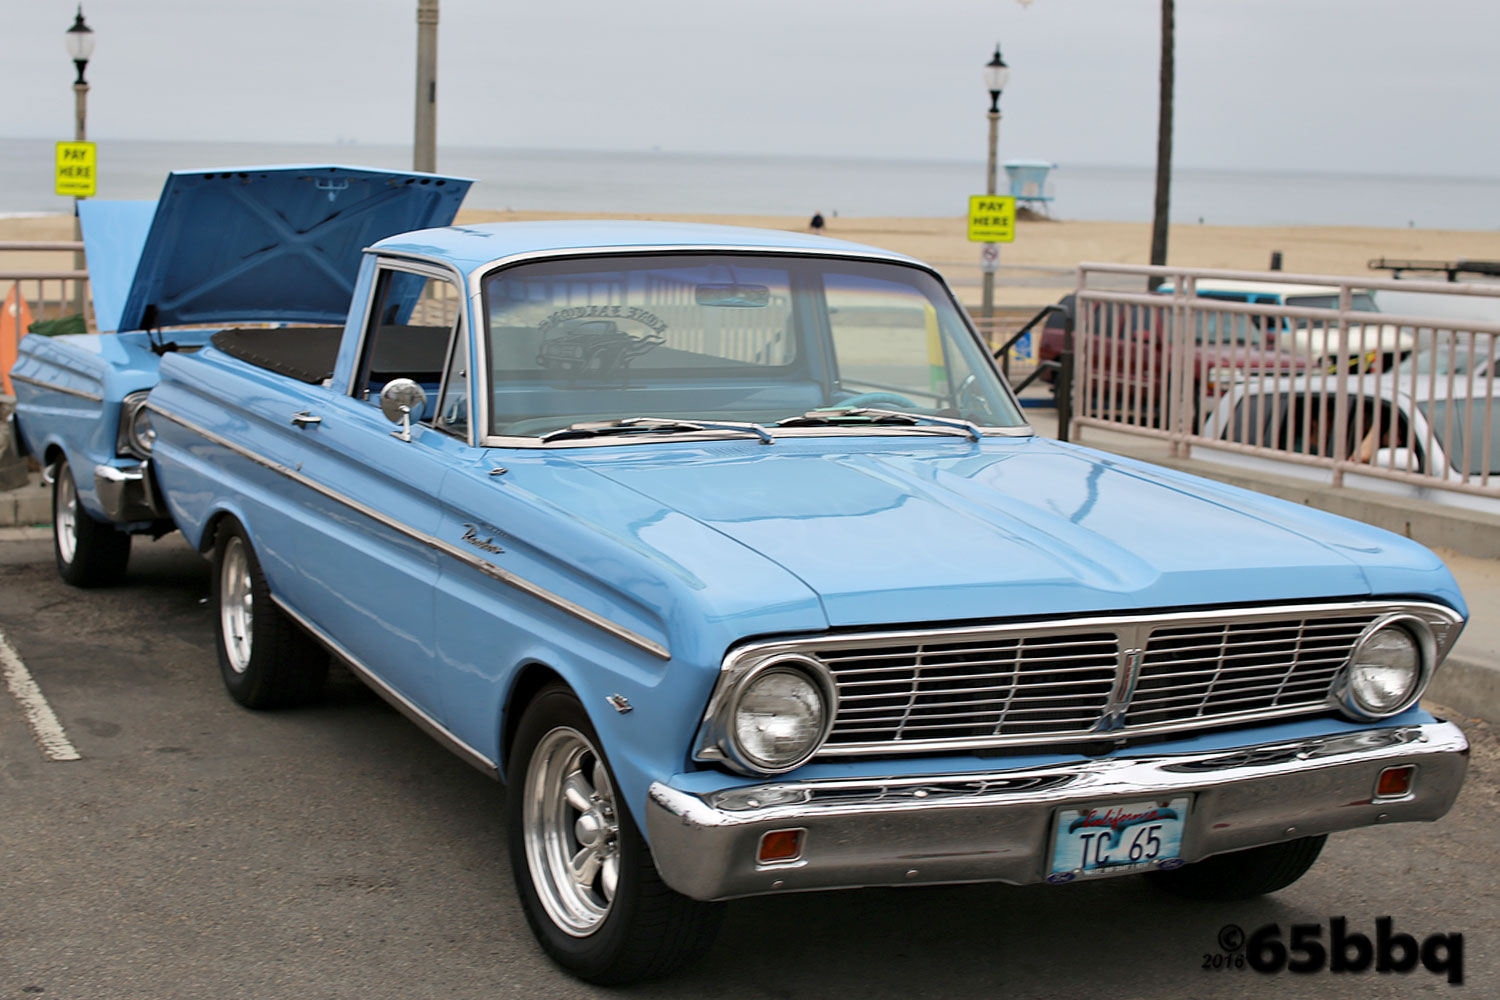 The Ranchero and the bulue q